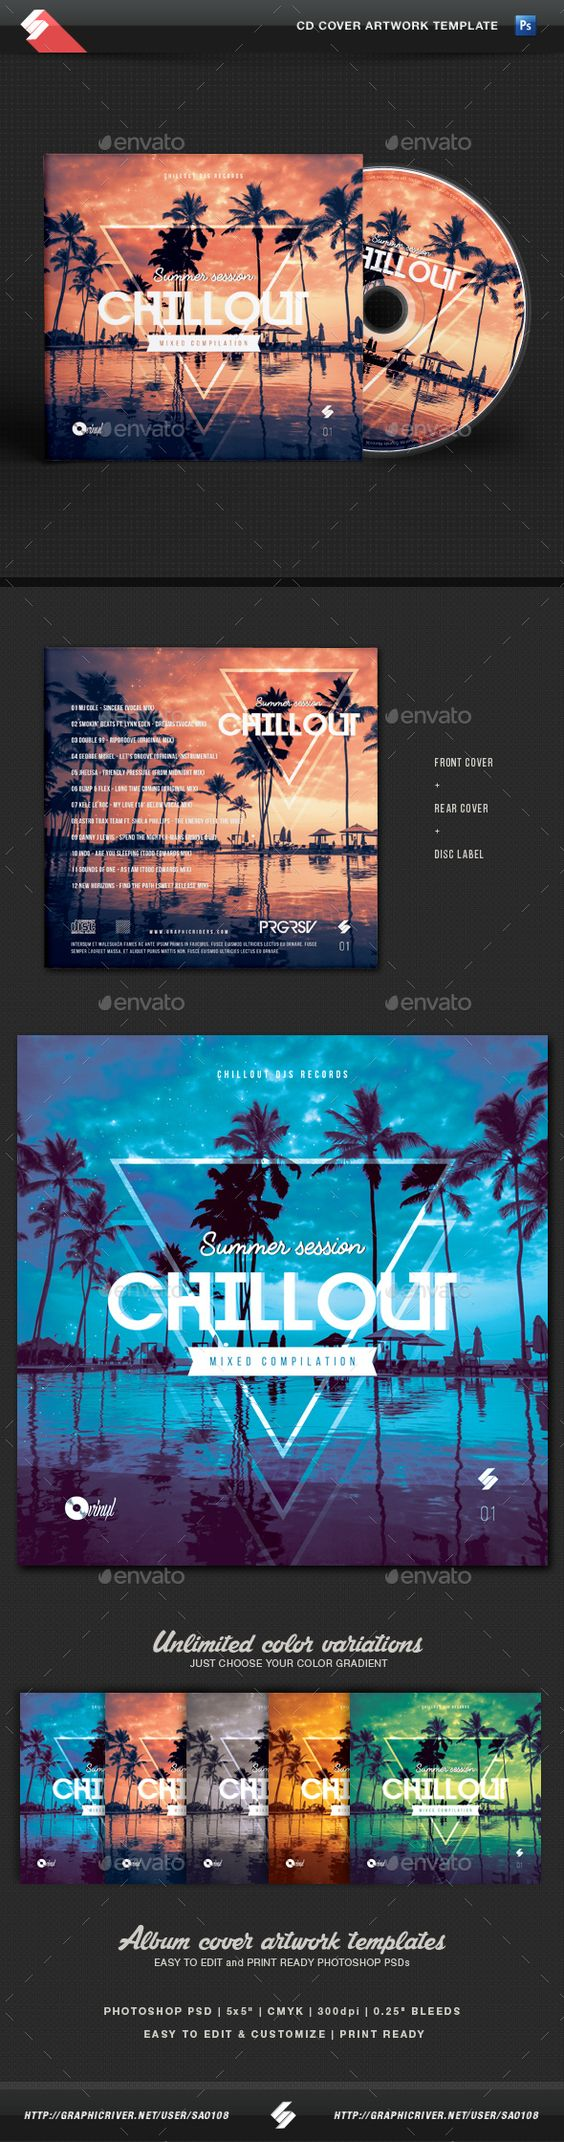 Summer Session - Chillout CD Cover Artwork Template - CD & DVD Artwork Print Templates.Download here: http://graphicriver.net/item/summer-session-chillout-cd-cover-artwork-template/16279683?ref=arroganttype